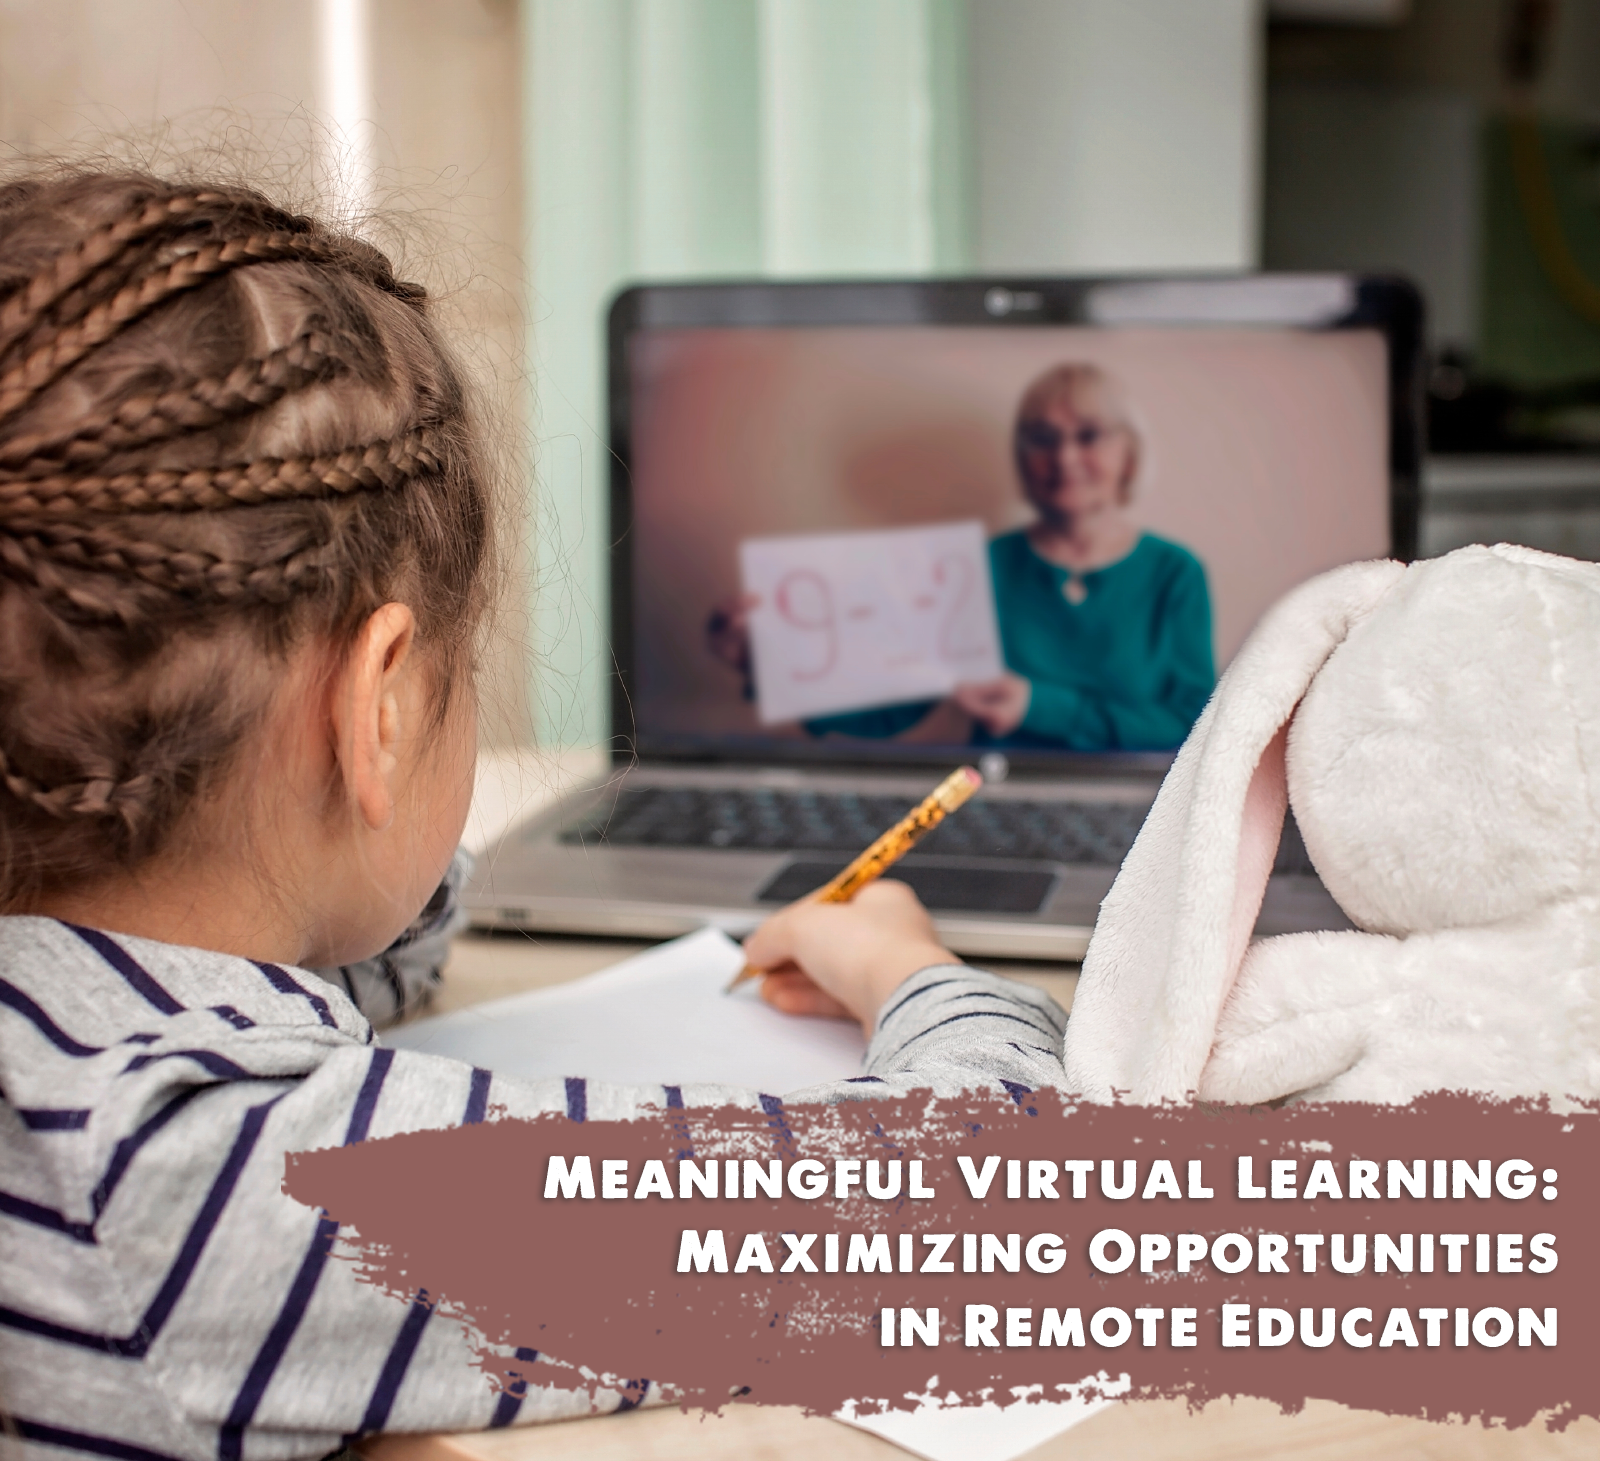 Meaningful Virtual Learning - Maximizing Opportunities in Remote Education